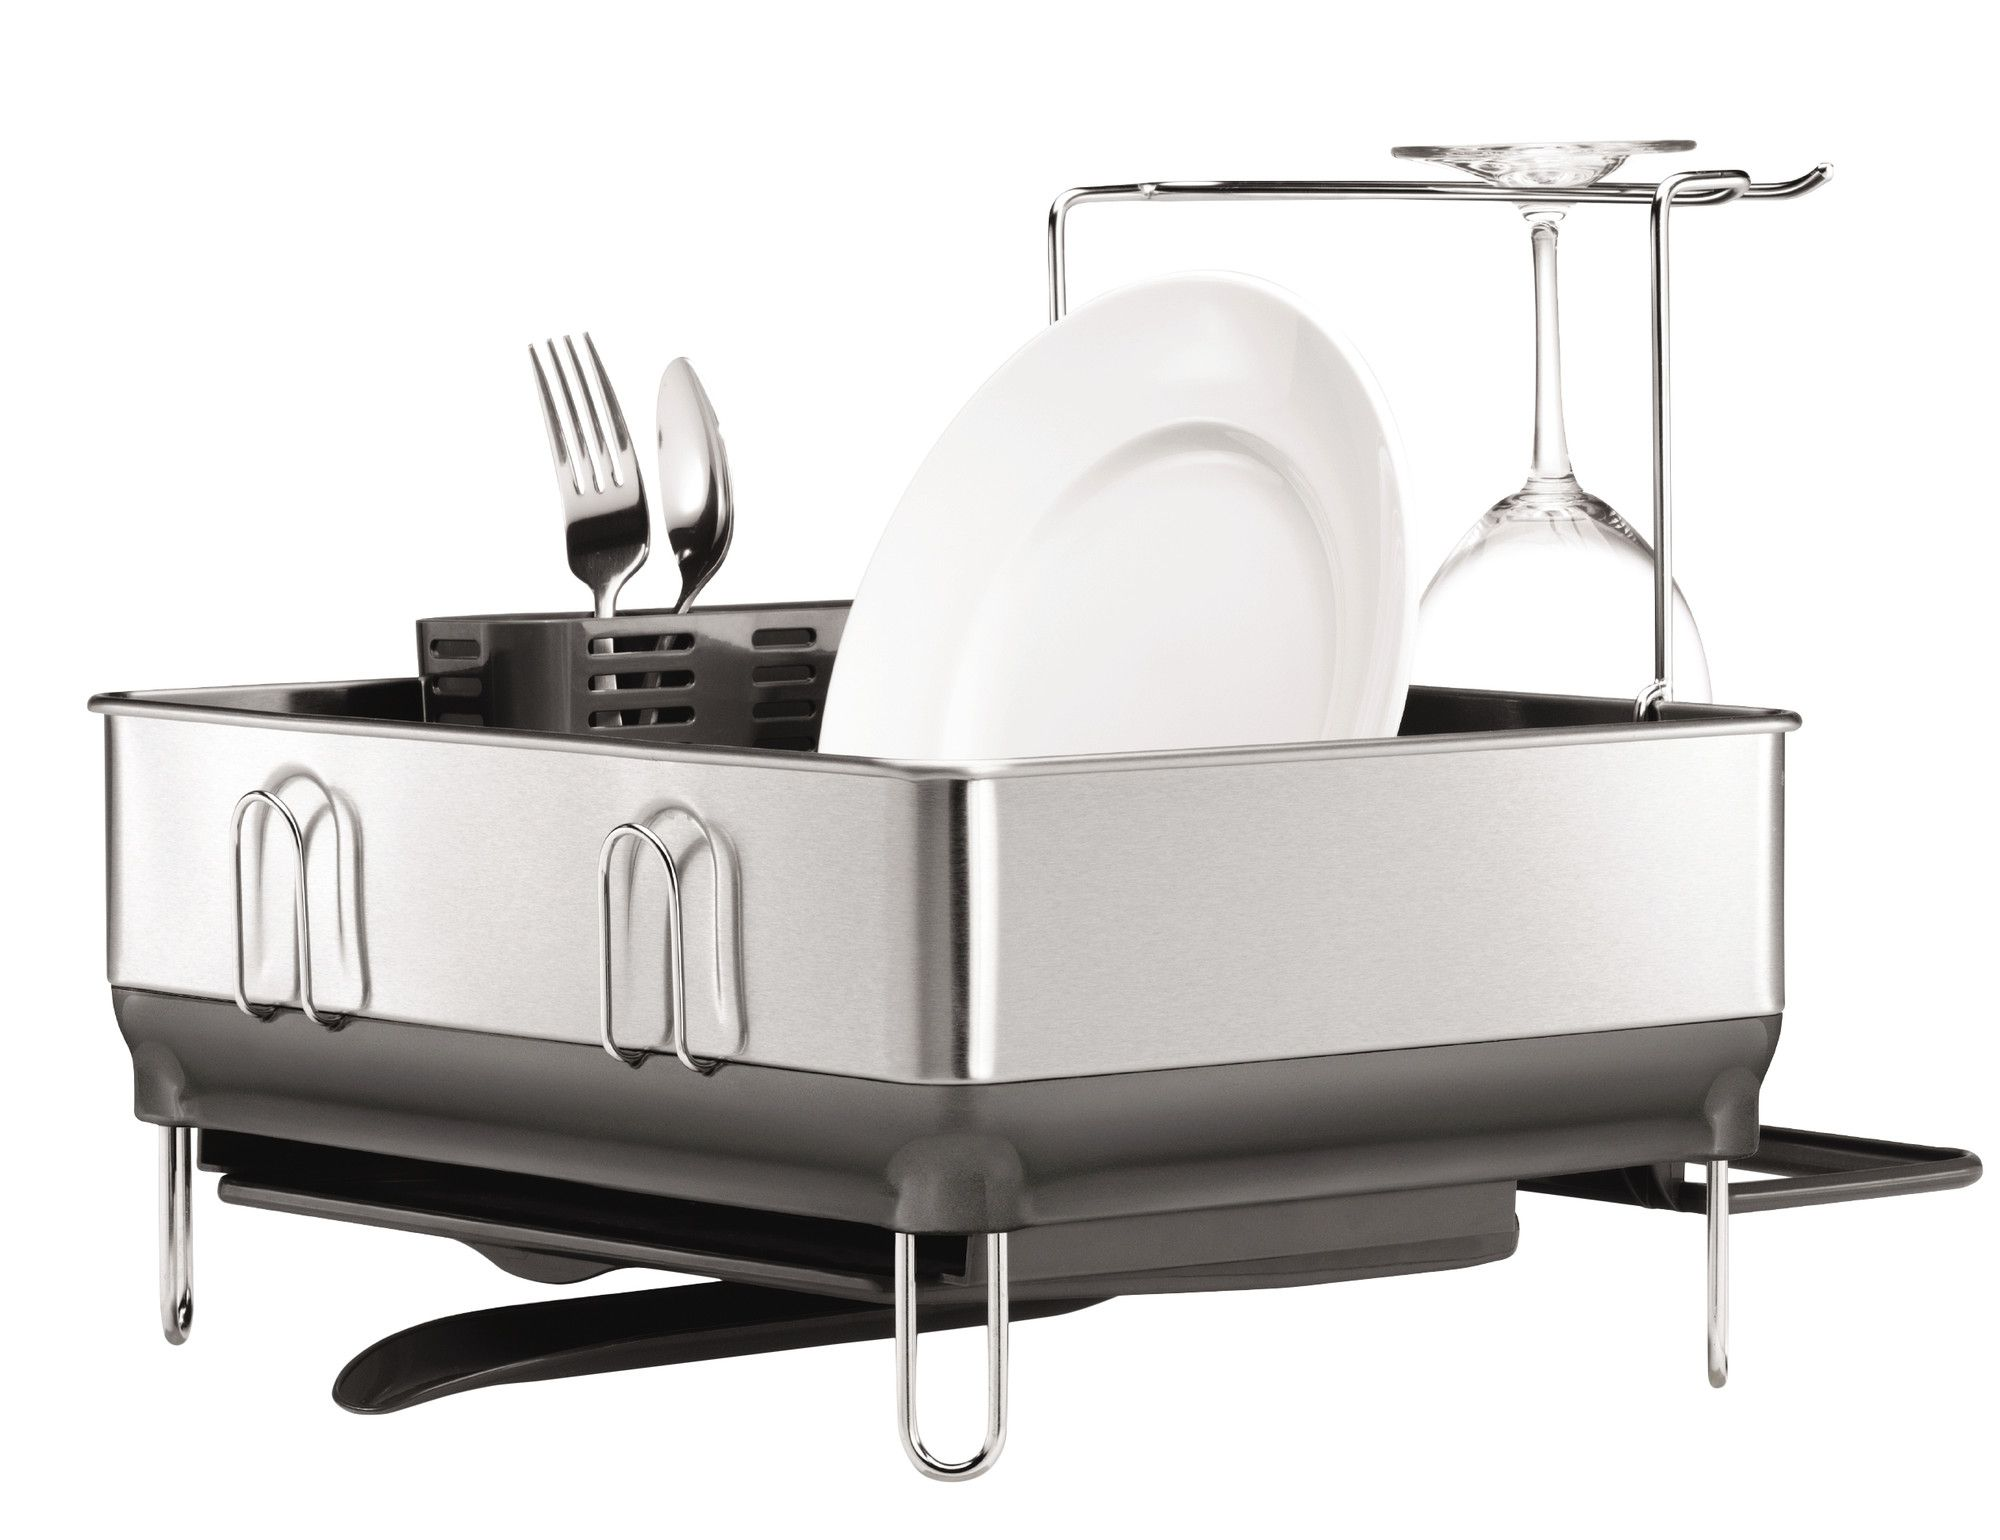 pact Stainless Steel Frame Fingerprint Proof Brushed Dish Rack